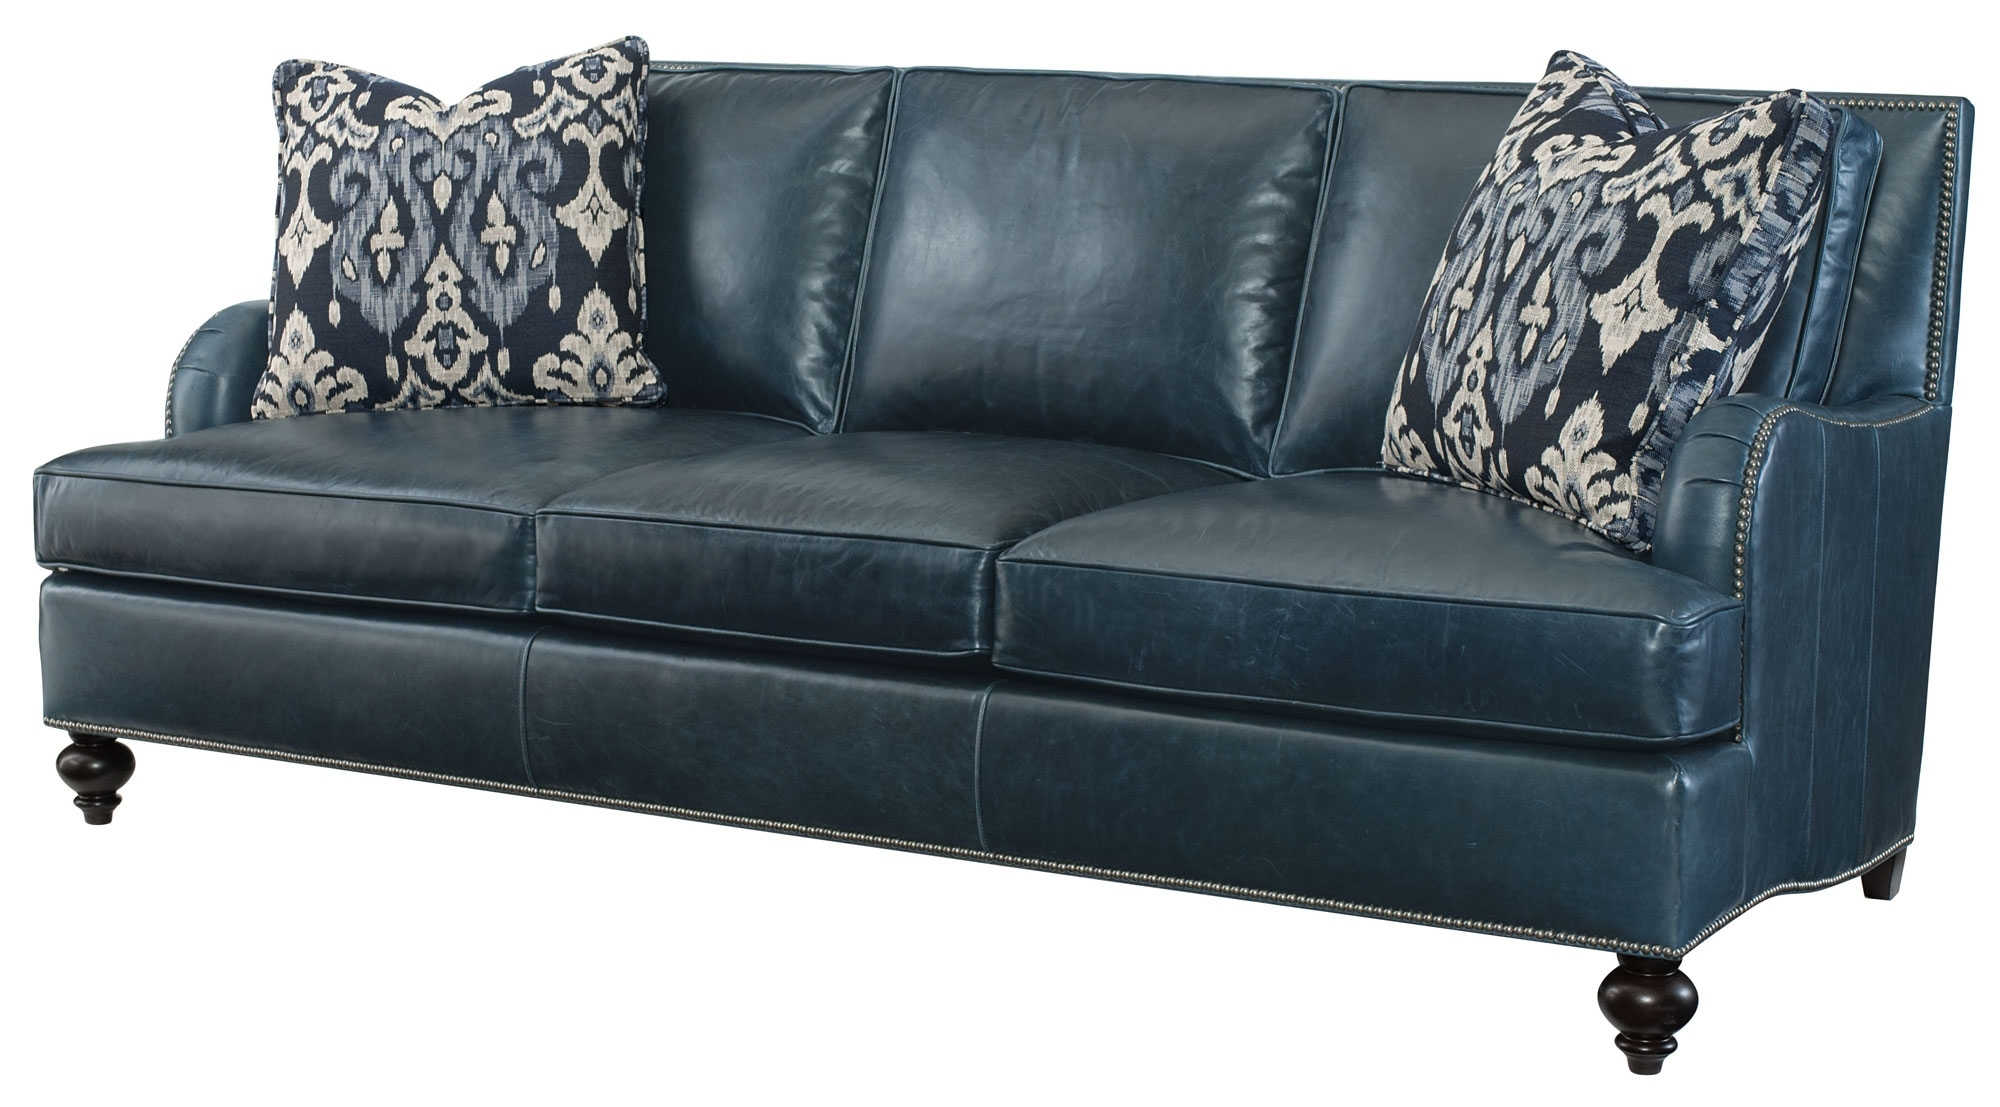 Dillards Sectional Sofas Throughout Famous Chocolate Leather Sofa (View 7 of 20)